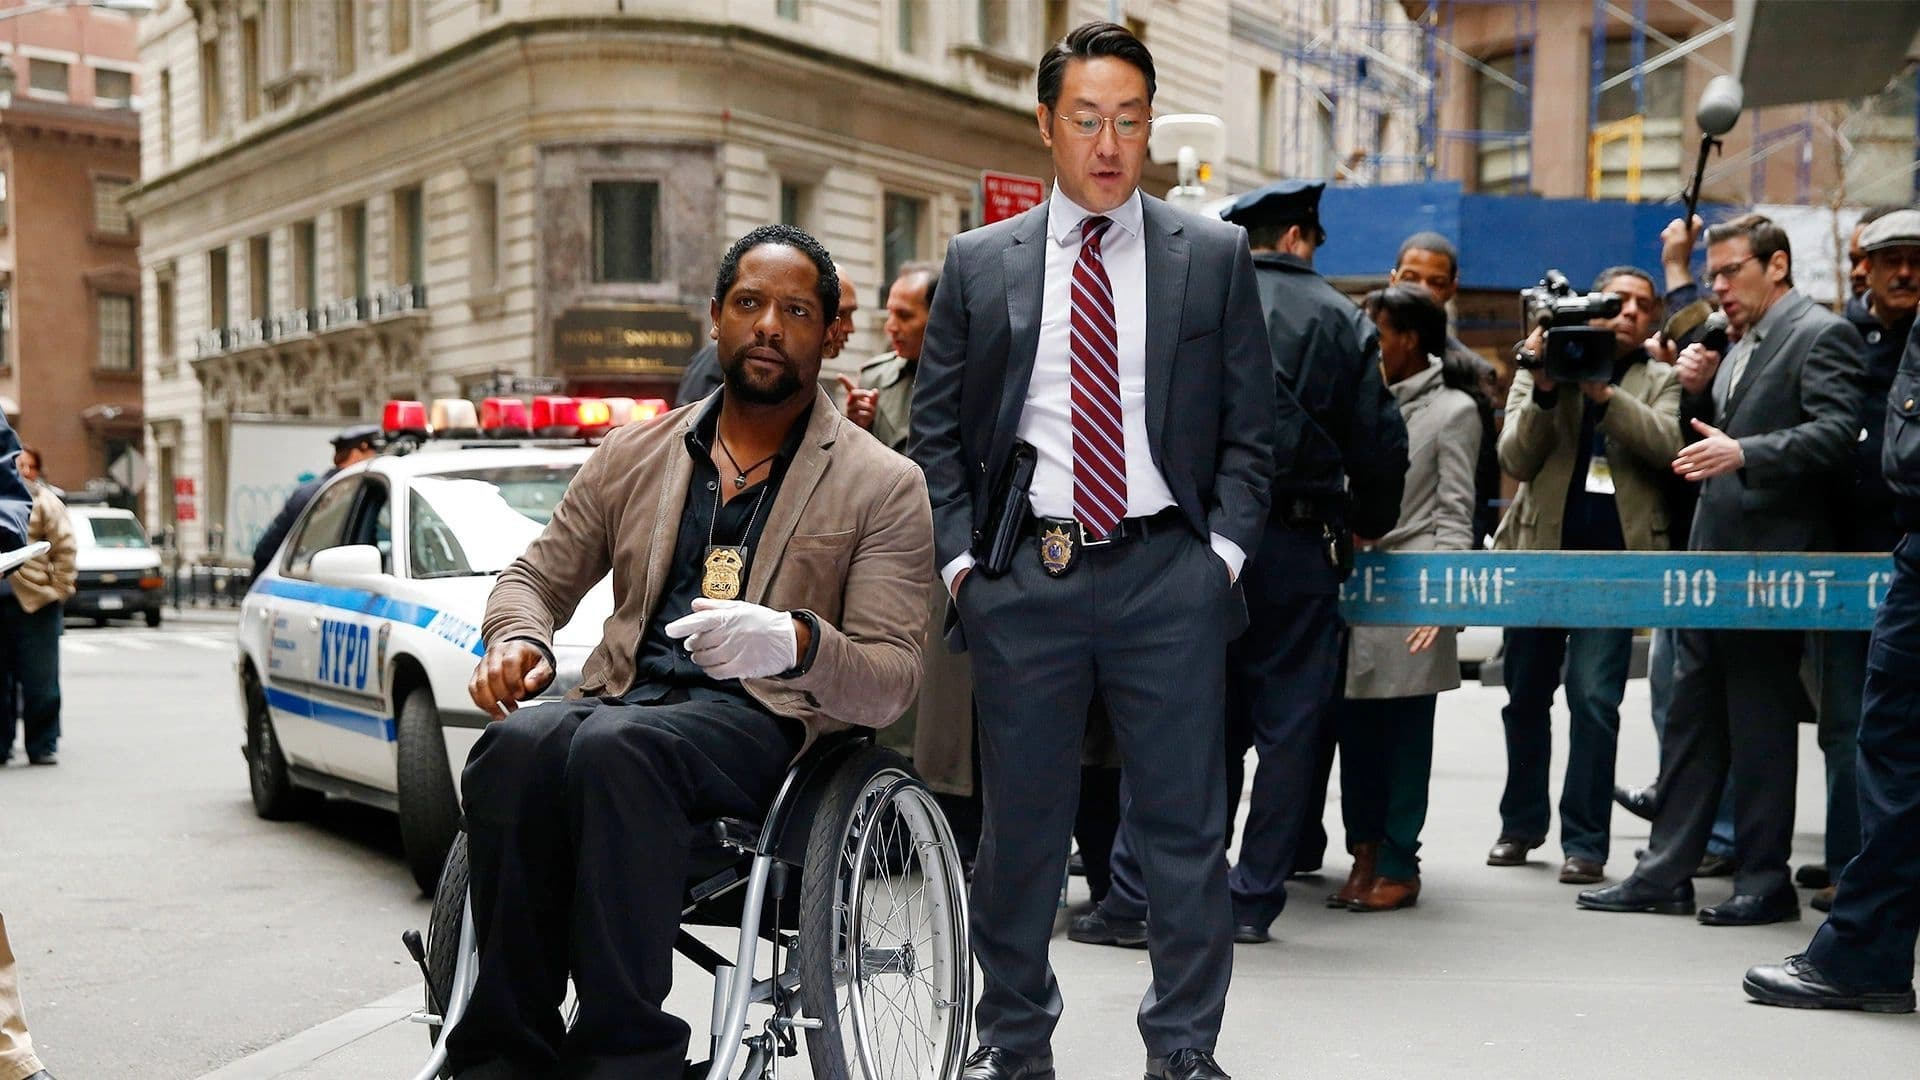 NBC's Ironside and Welcome to the Family axed, Sean Saves the World gets additional script order and Community and Chicago PD get premiere date